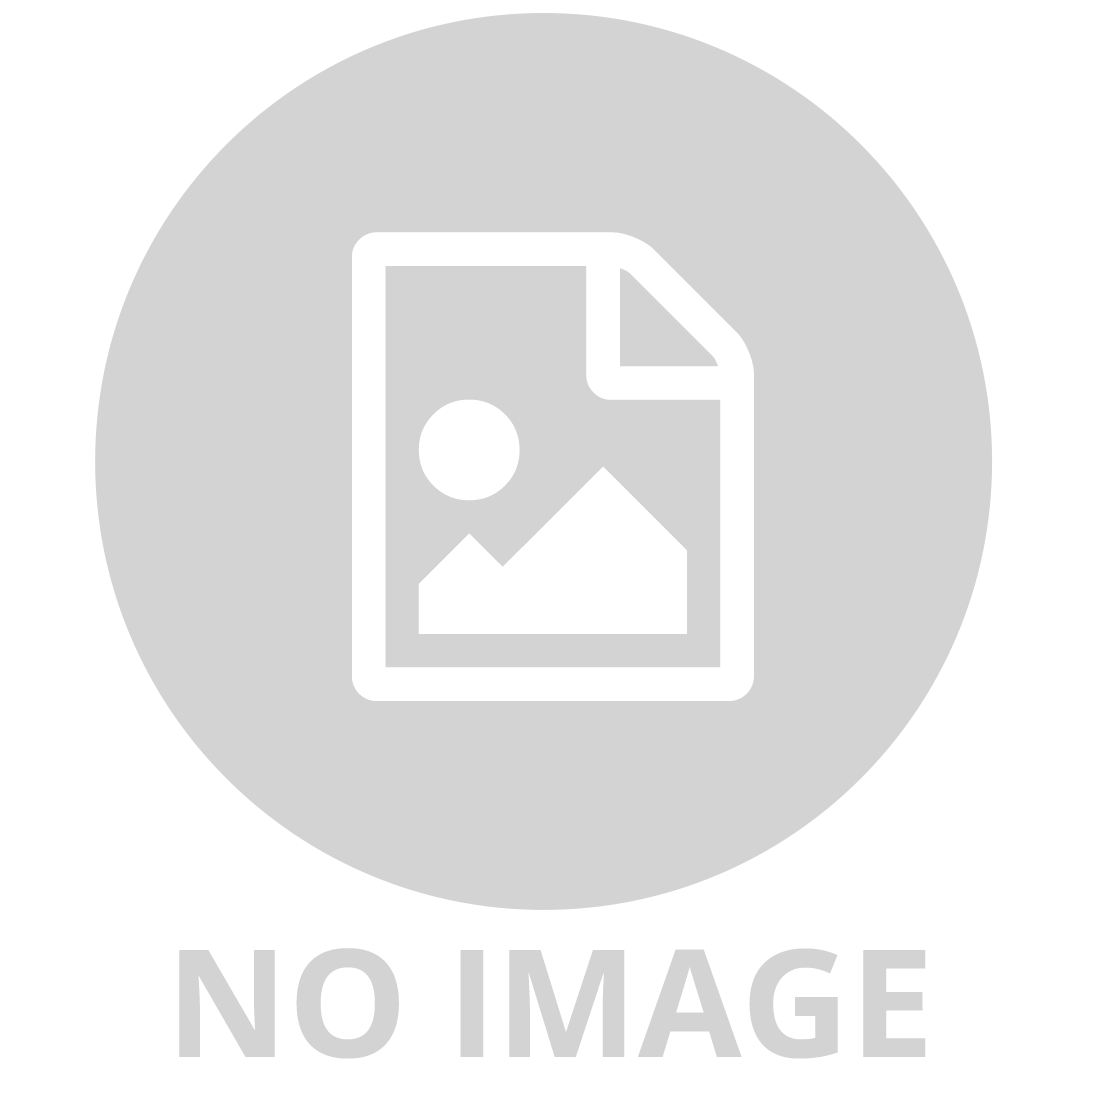 KNEE/ELBOW AND WRIST PROTECTION PADS- MEDIUM